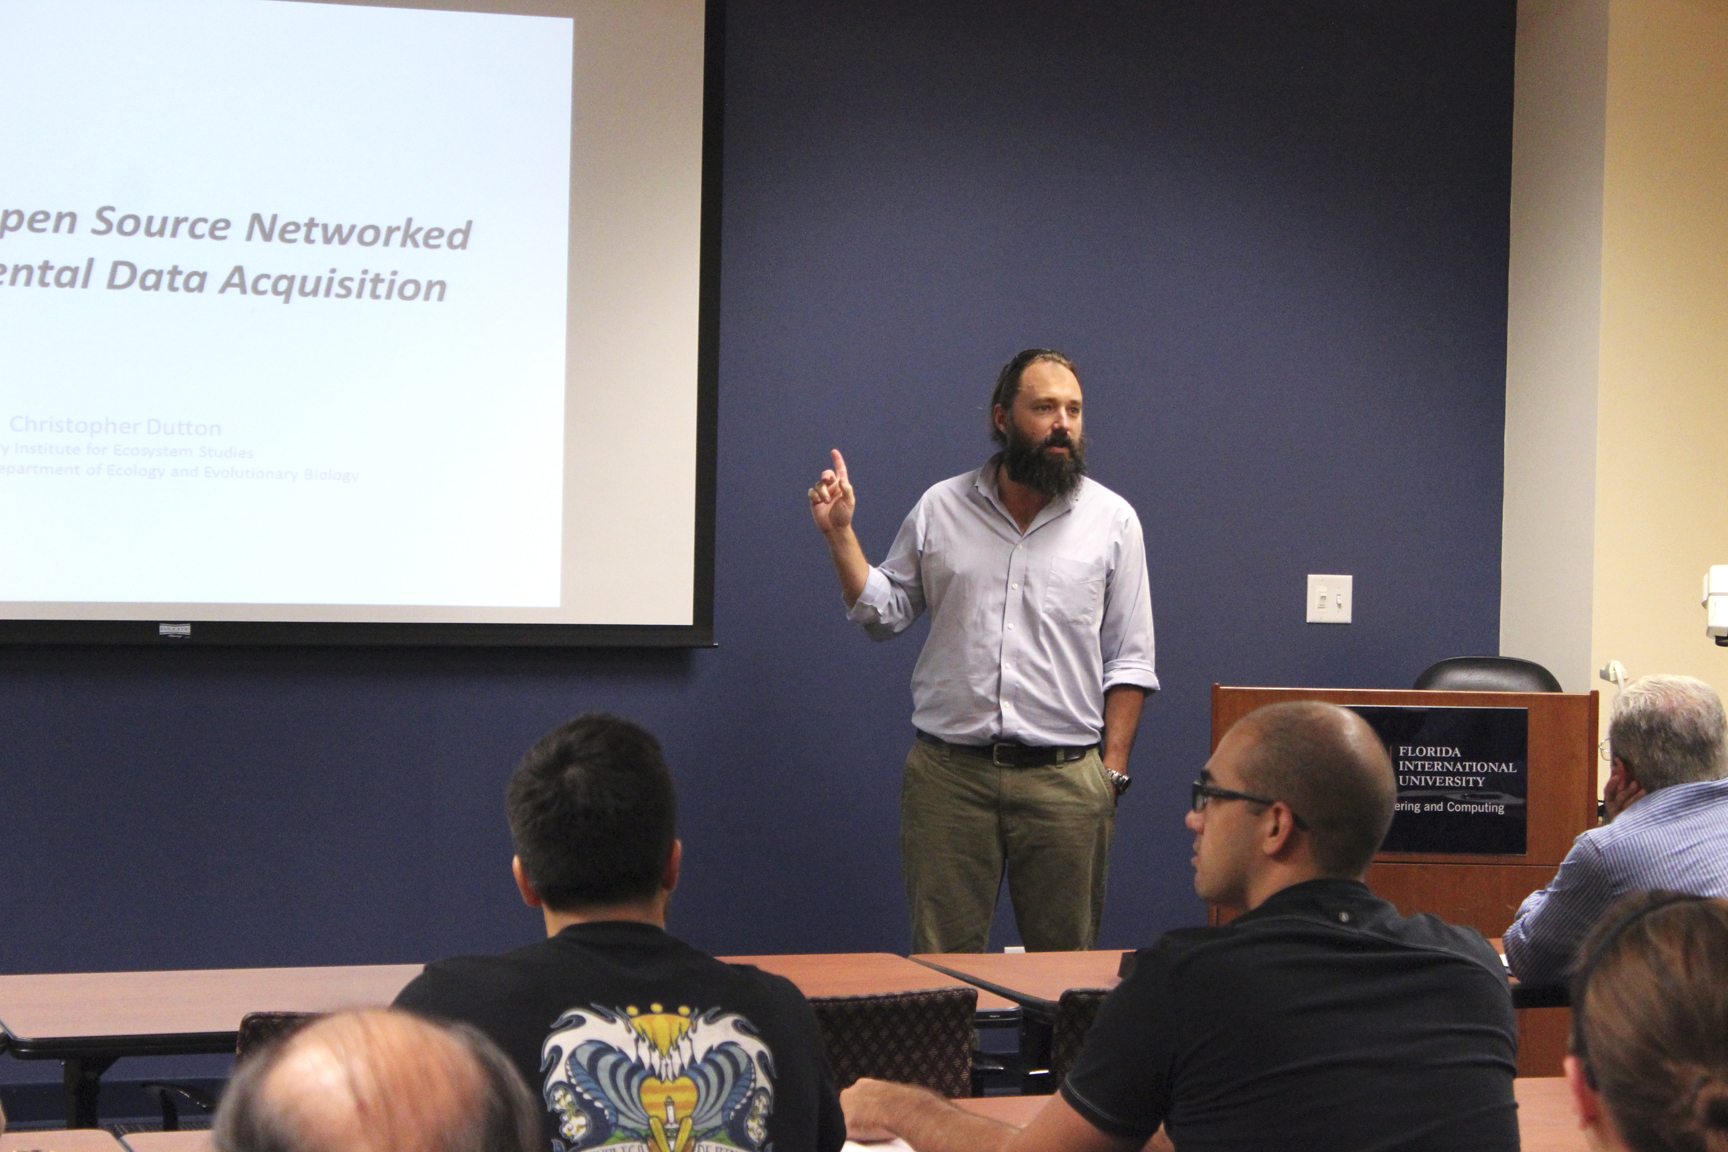 Low-Cost Open Source Networked Environmental Data Acquisition Seminar